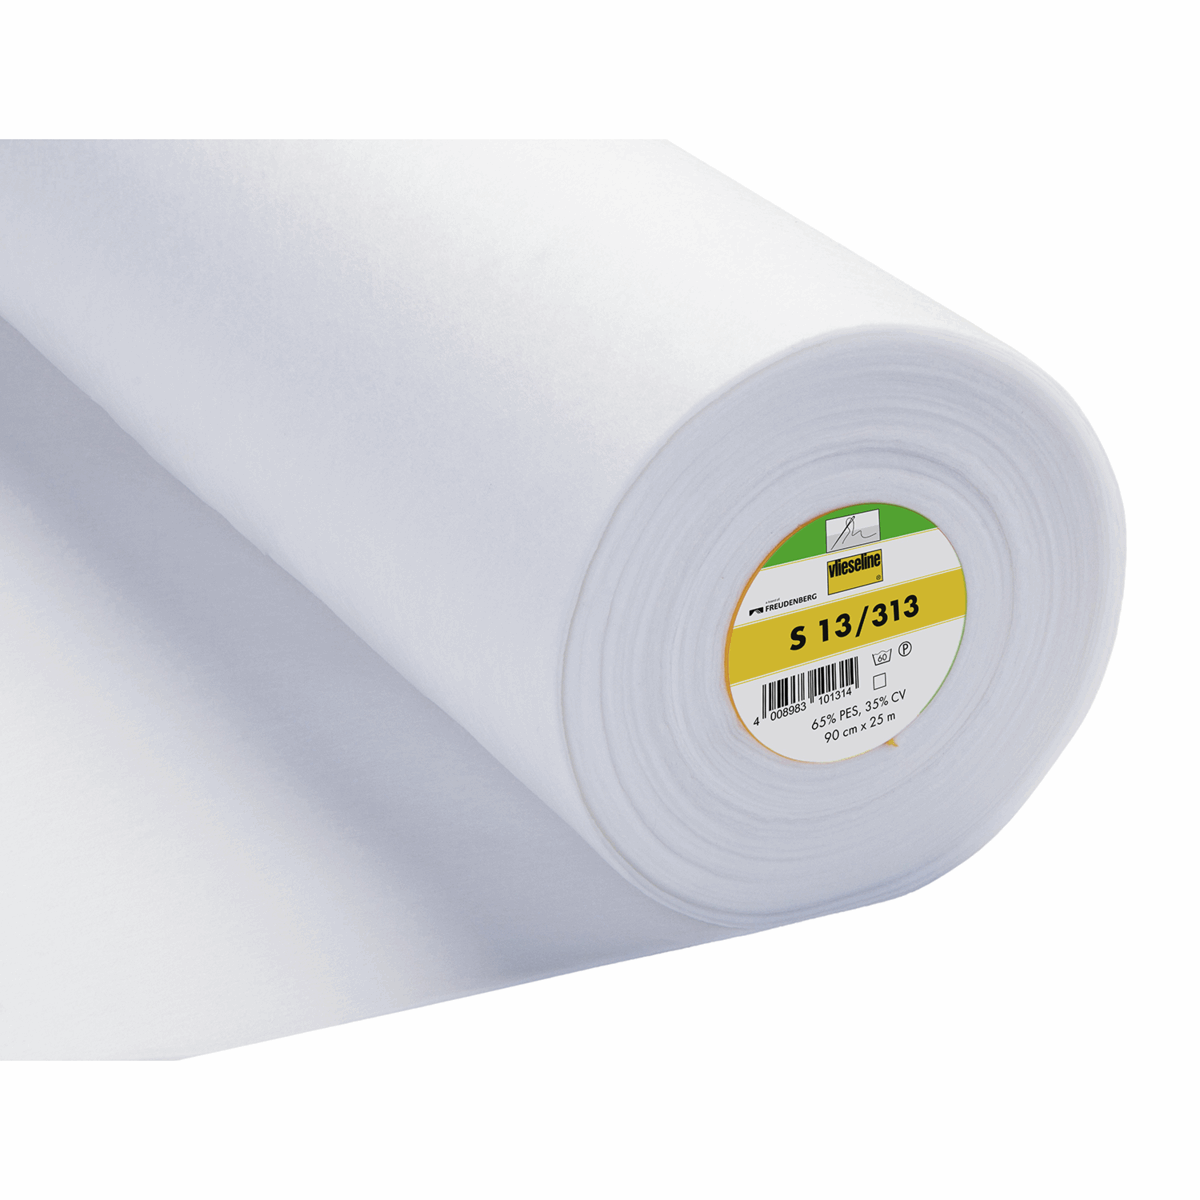 Picture of Sew-In Interlining Standard Heavy: 25m x 90cm: White